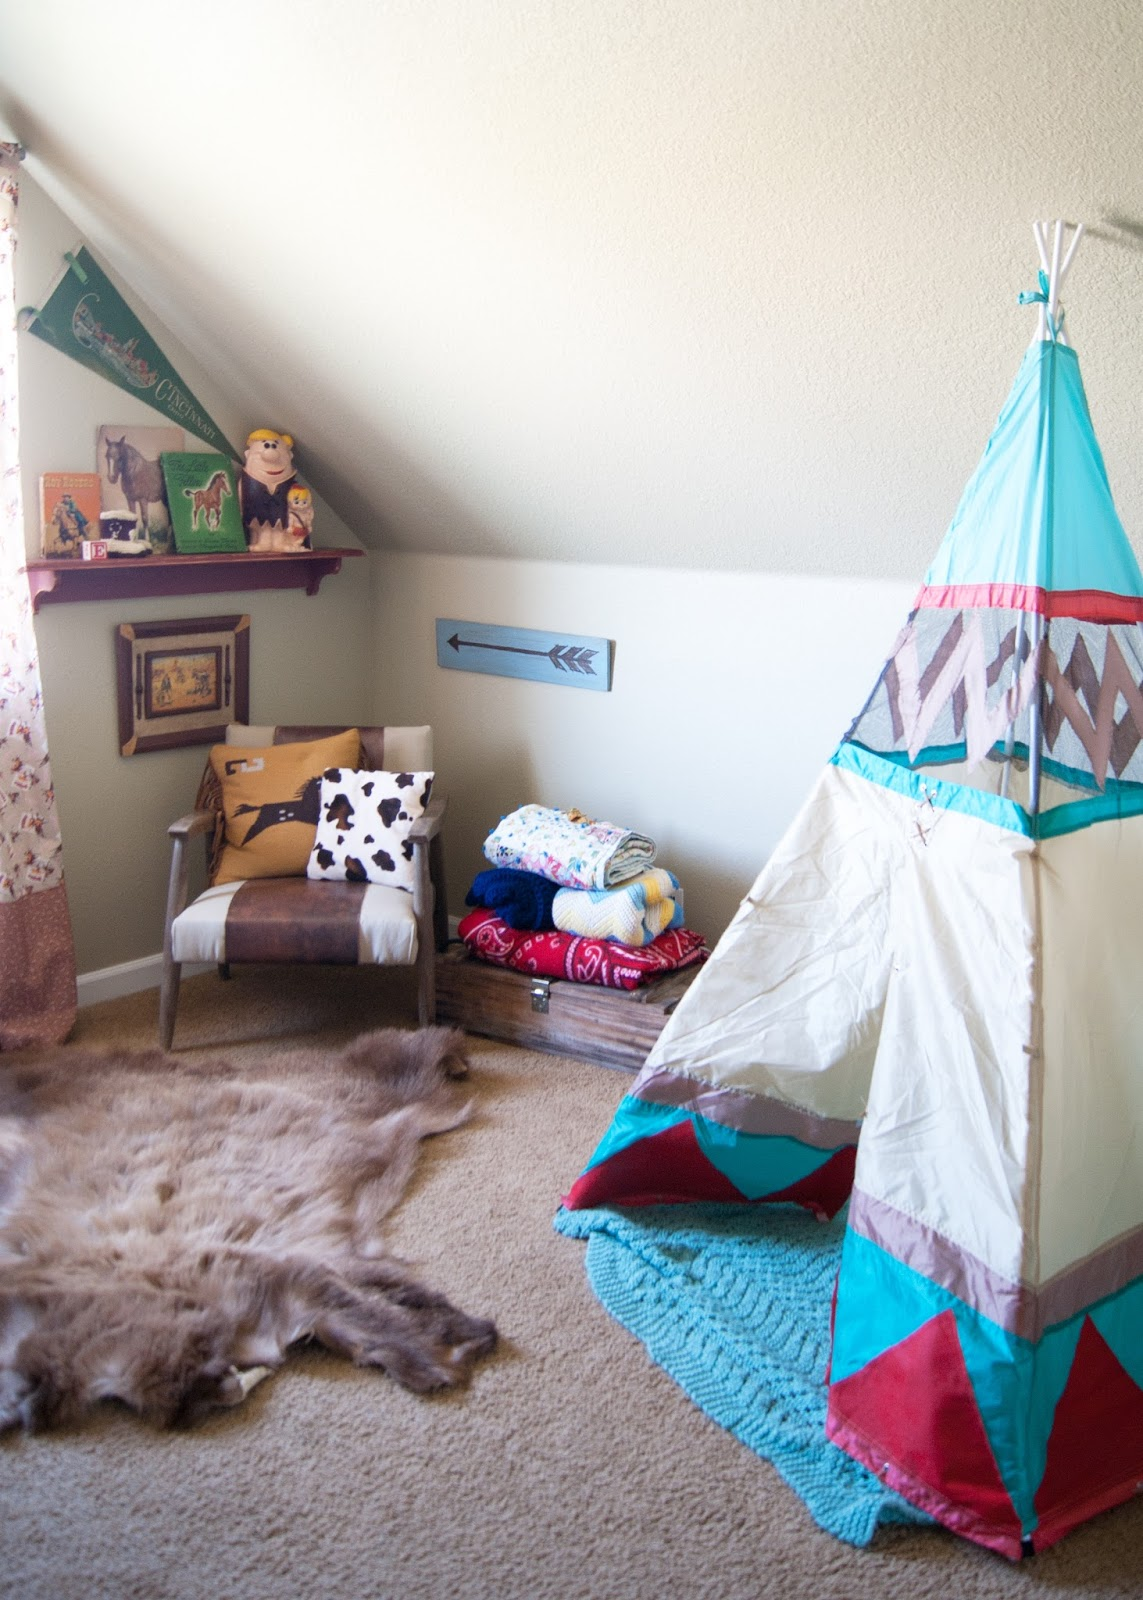 A western bedroom - tent, mid century chair, heirlooms and flea market finds